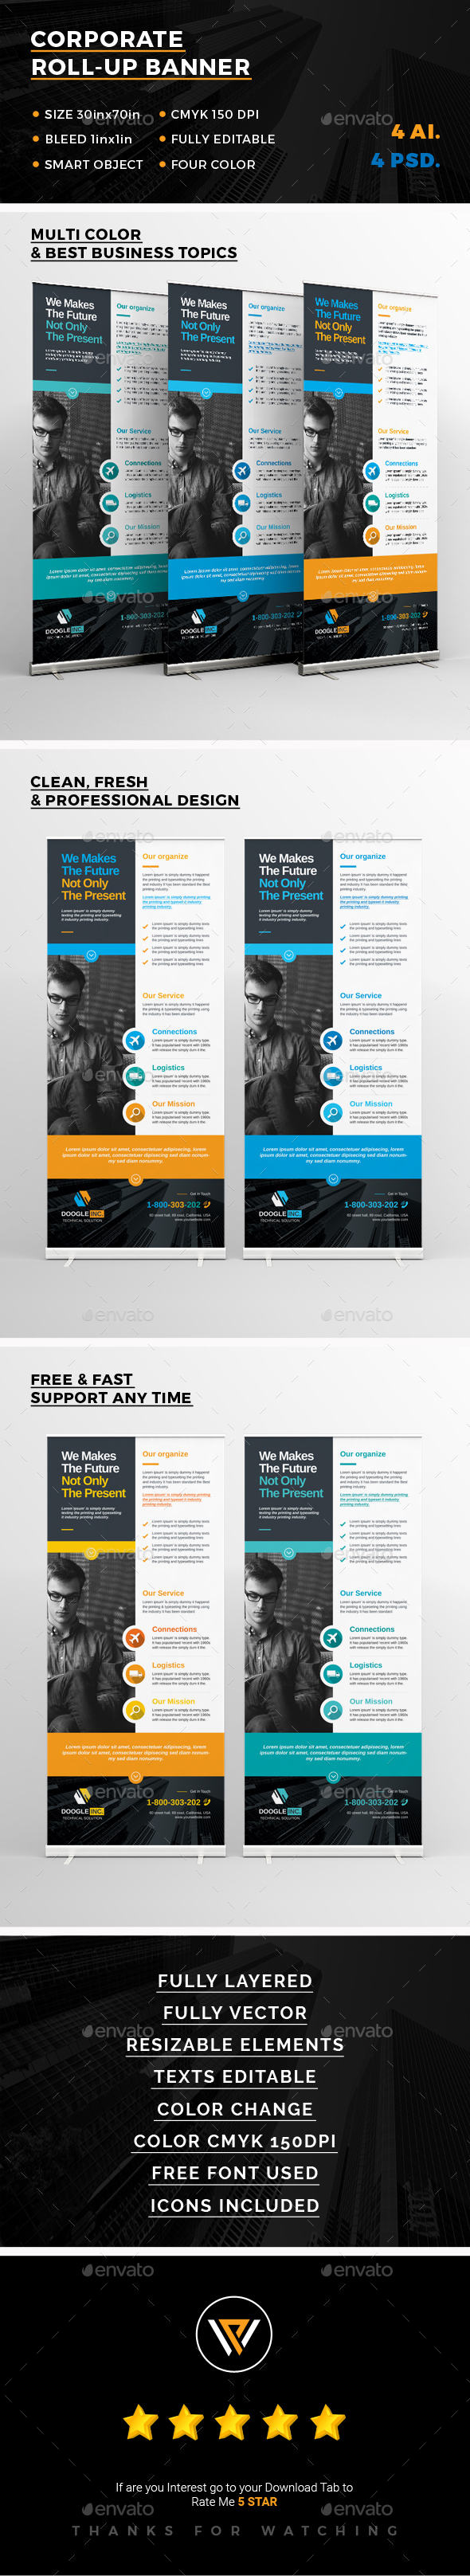 Roll-Up Banners Template PSD, AI Illustrator | Roll-Up Banner ...